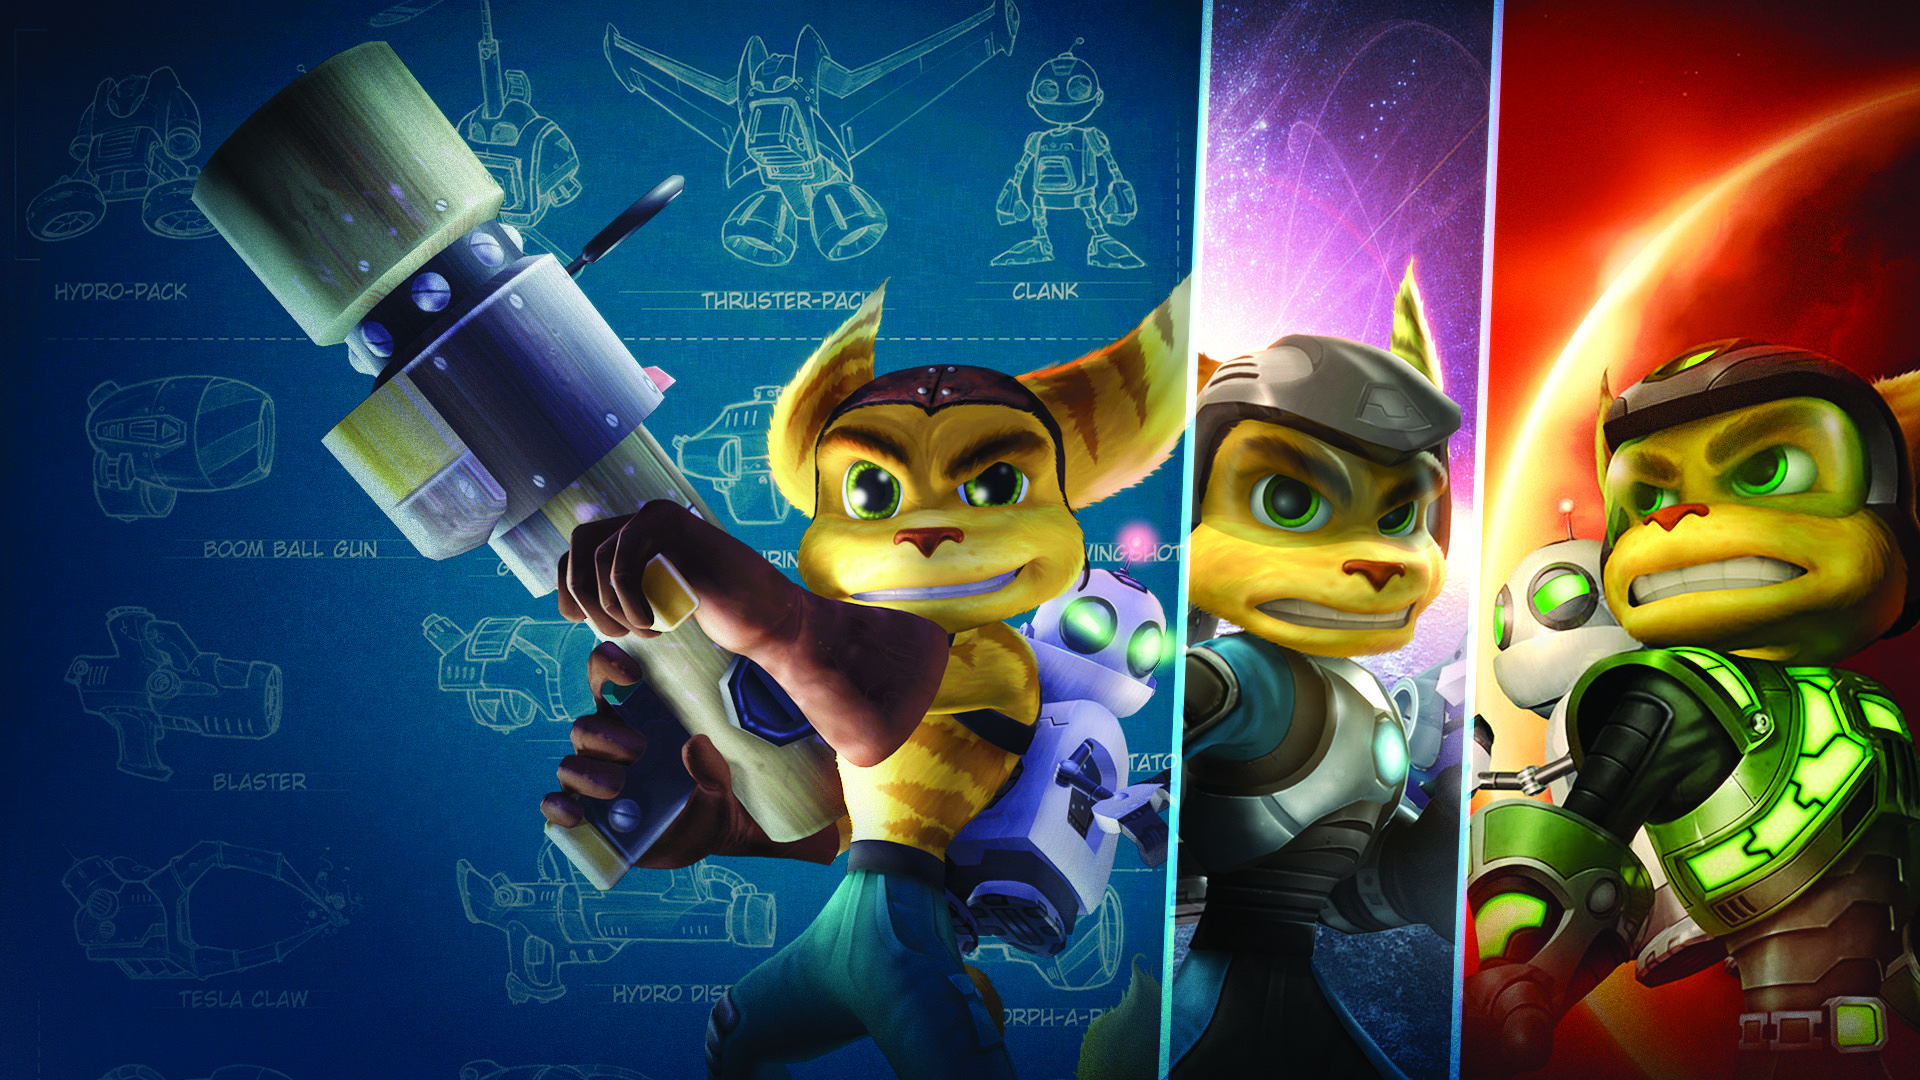 Ratchet And Clank Wallpapers For Ps Vita Wallpaper Cave